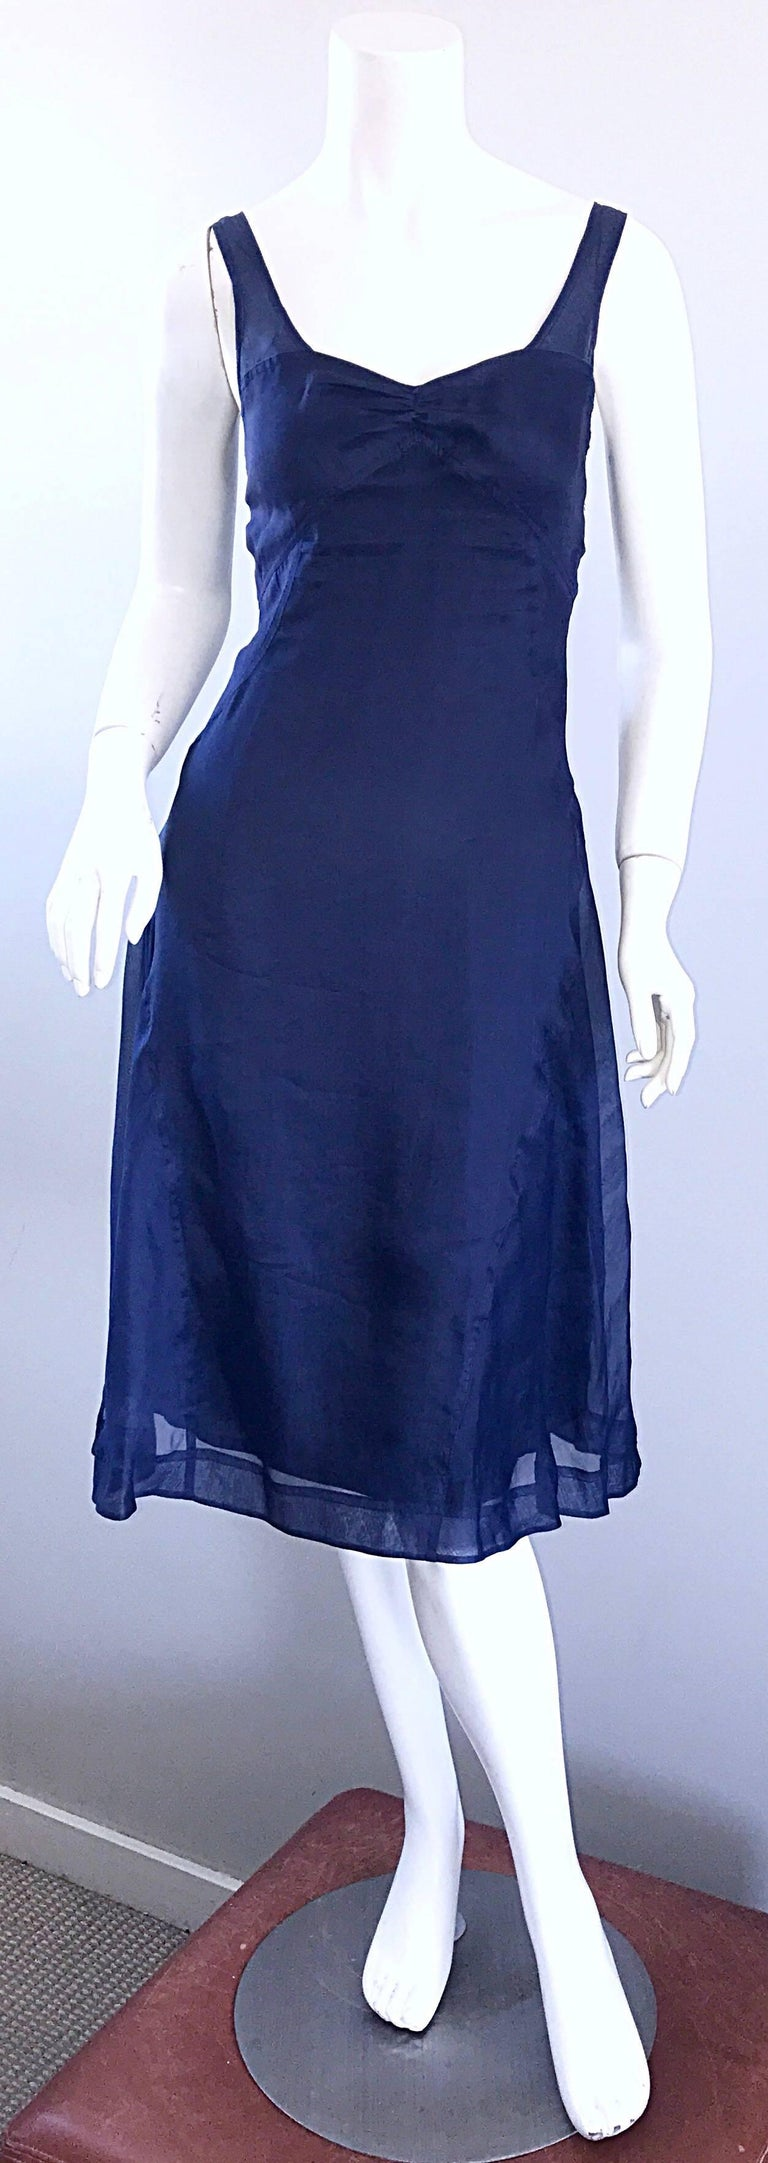 Chic late 90s CELINE navy blue silk chiffon sweetheart dress! Features a tailored bodice with a sweetheart neckline, which flows into a flirty flowy skirt. Skirt has a semi sheer navy chiffon overlay. Sits slightly off the shoulders. Hidden zipper